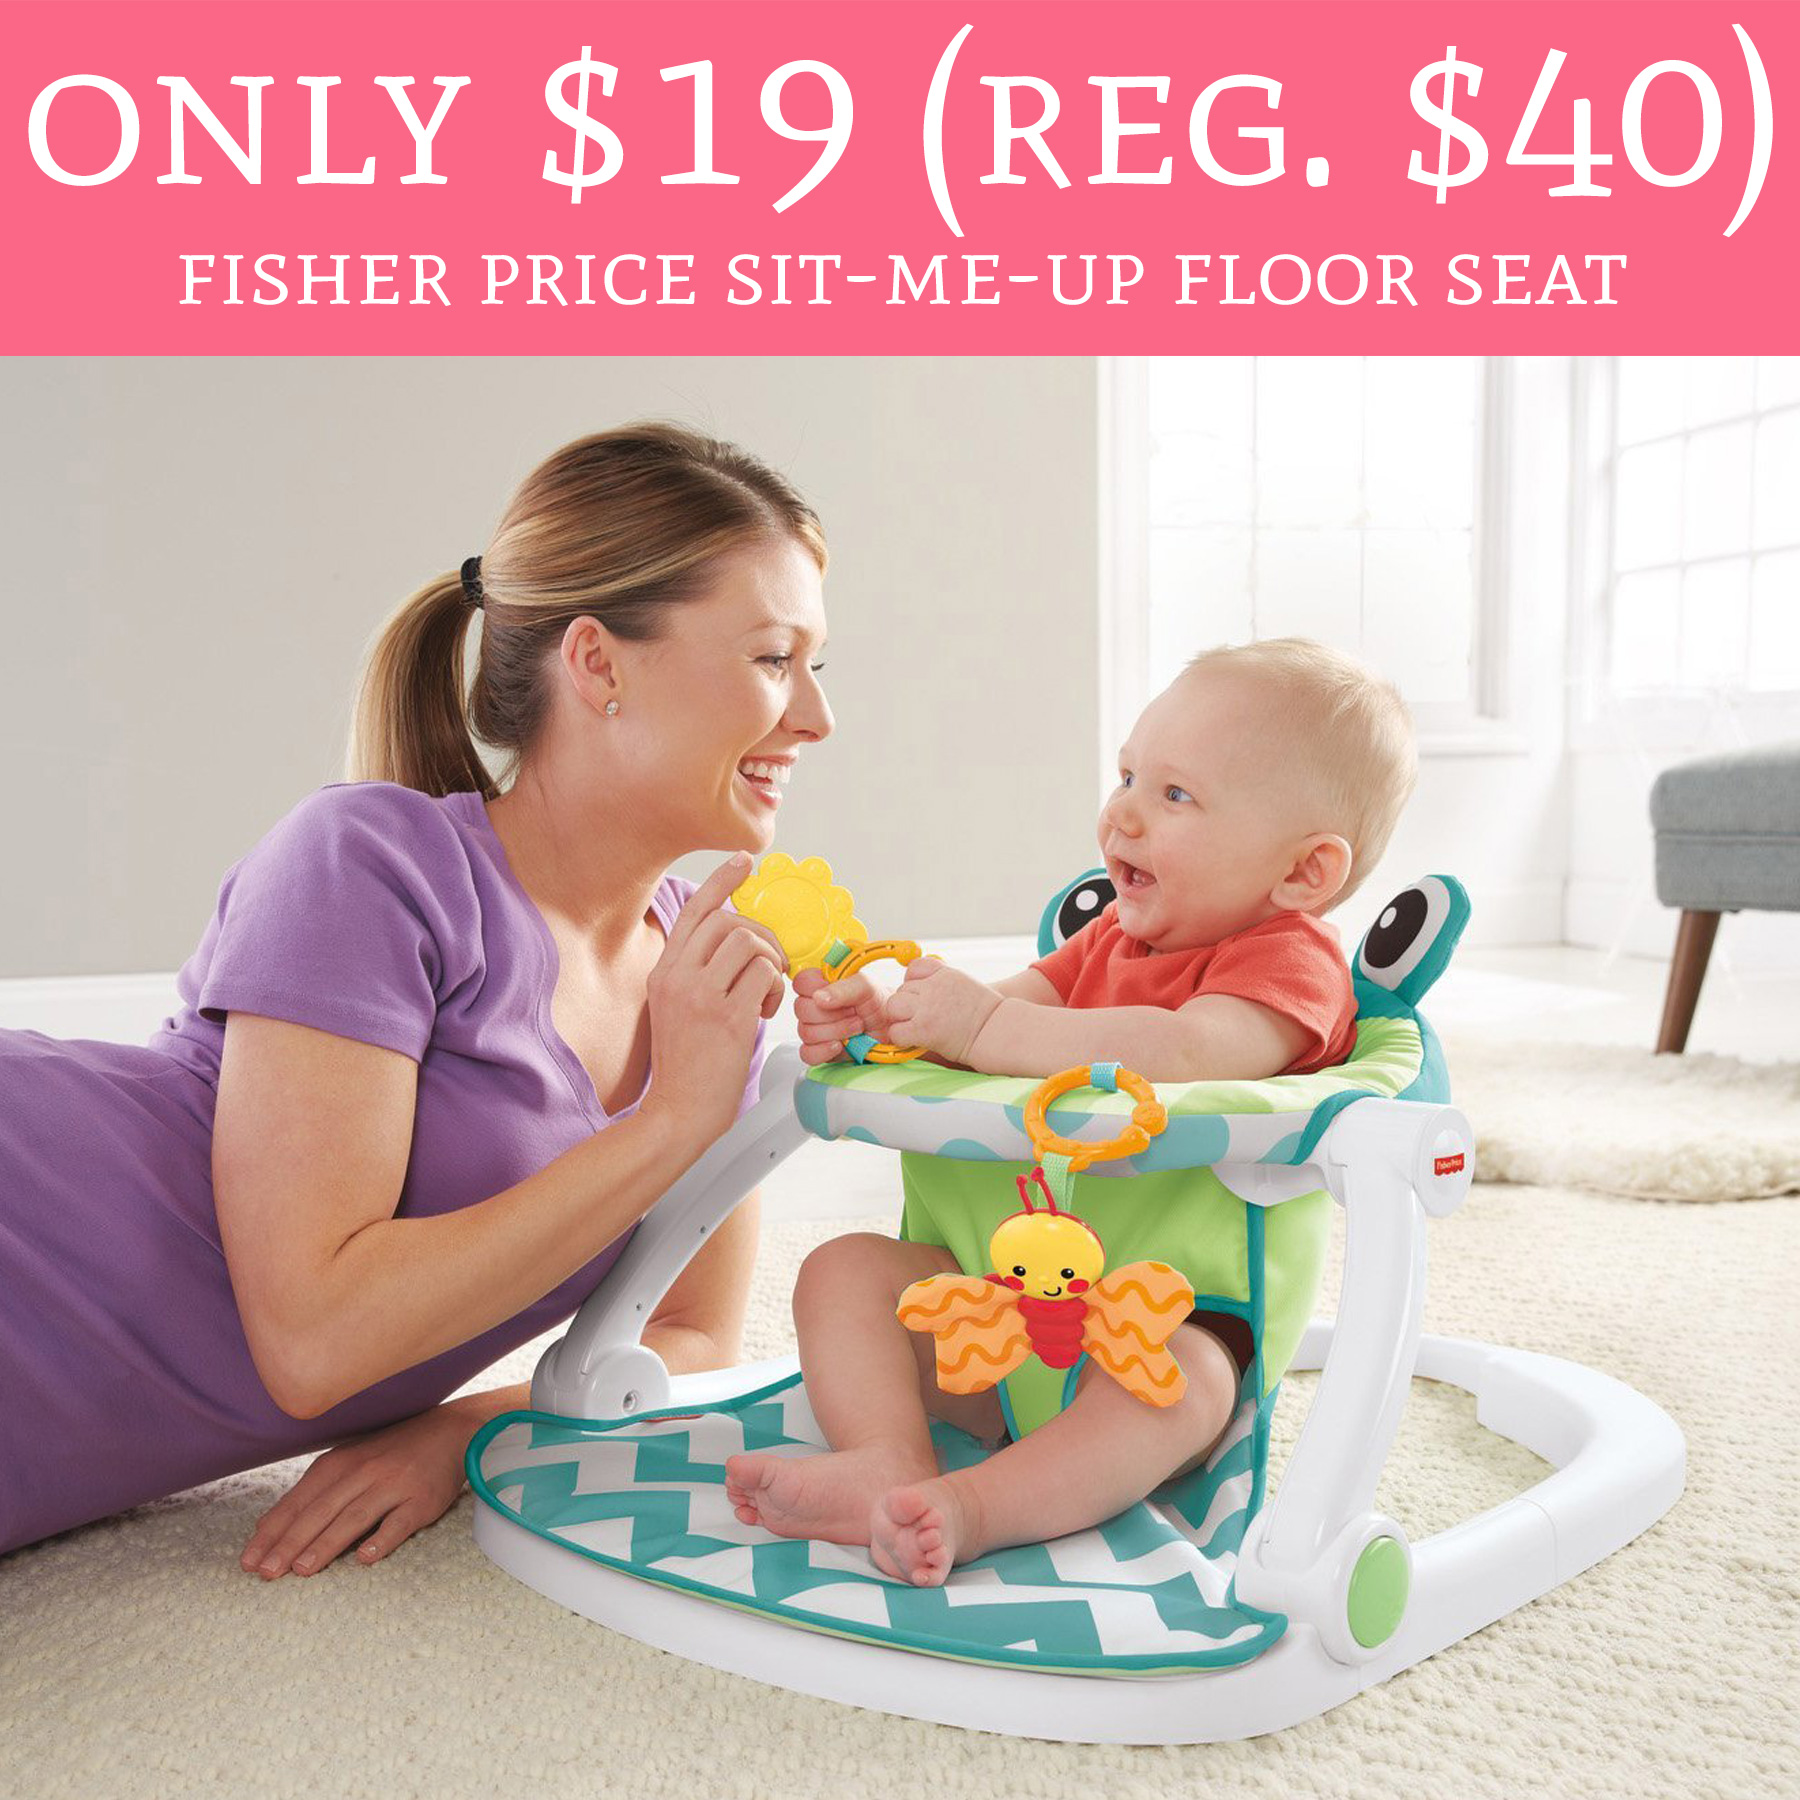 Fullsize Of Fisher Price Sit Me Up